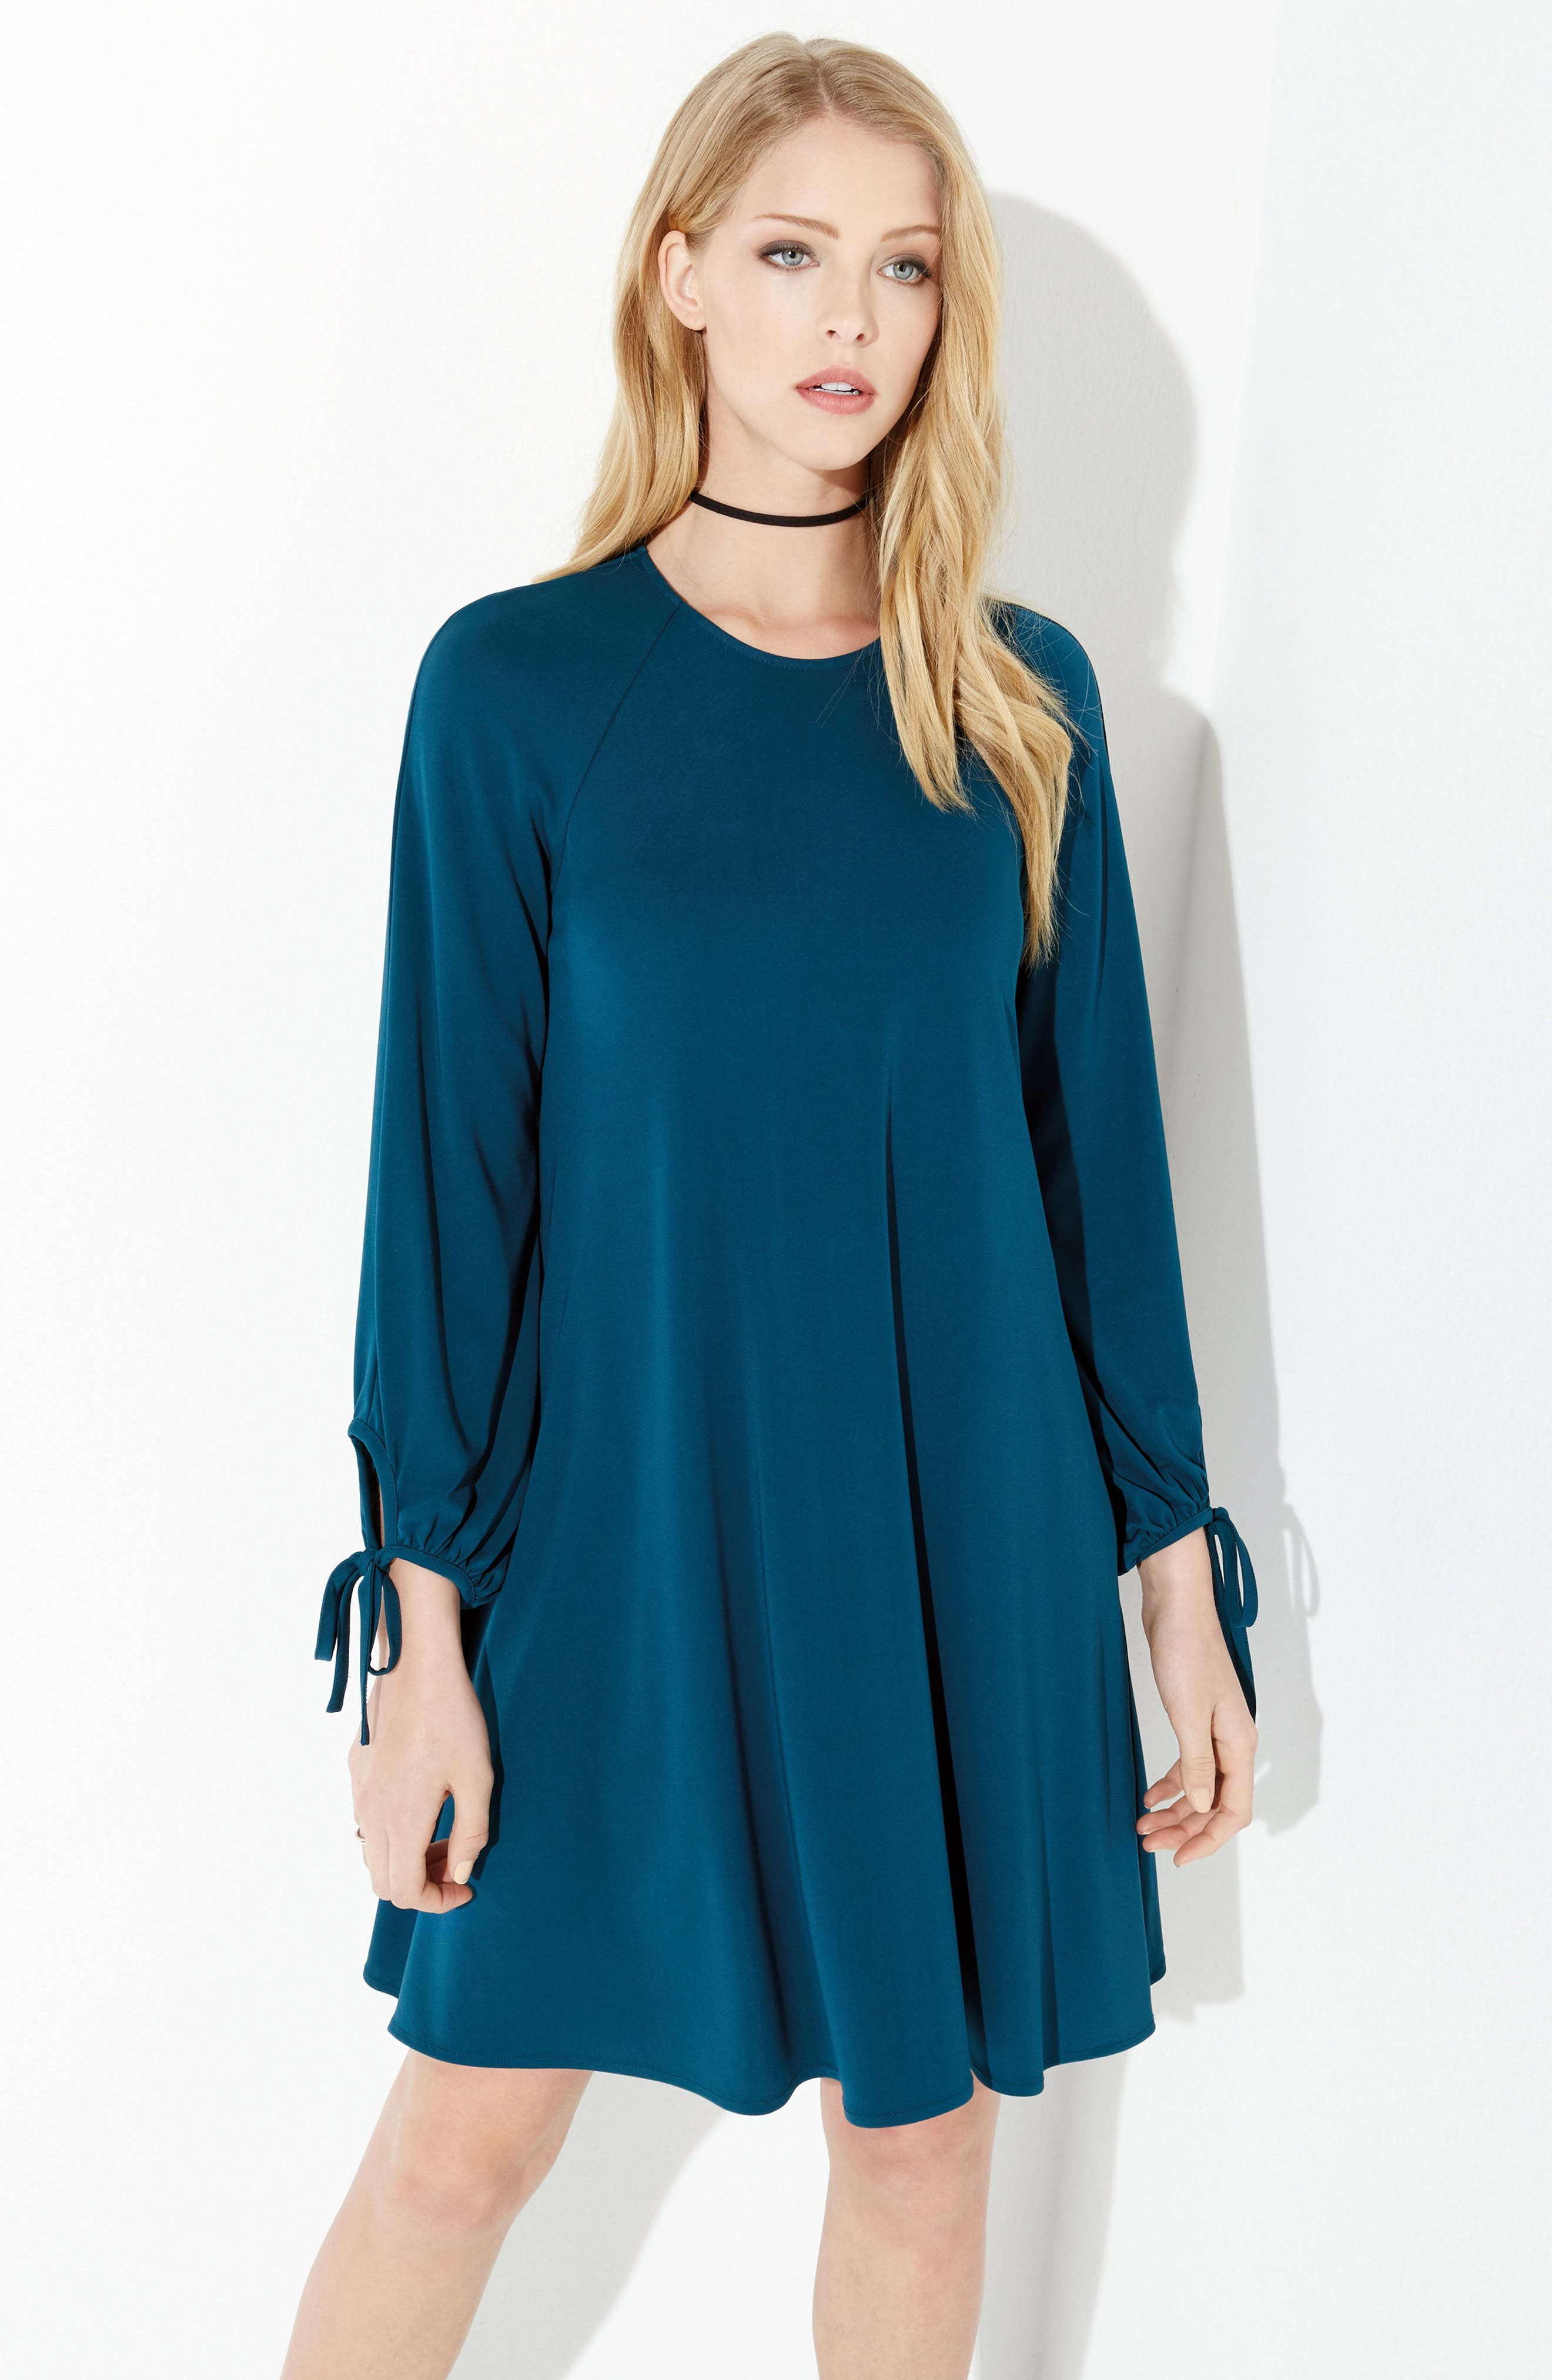 Tie Sleeve Shift Dress,                             Alternate thumbnail 3, color,                             340